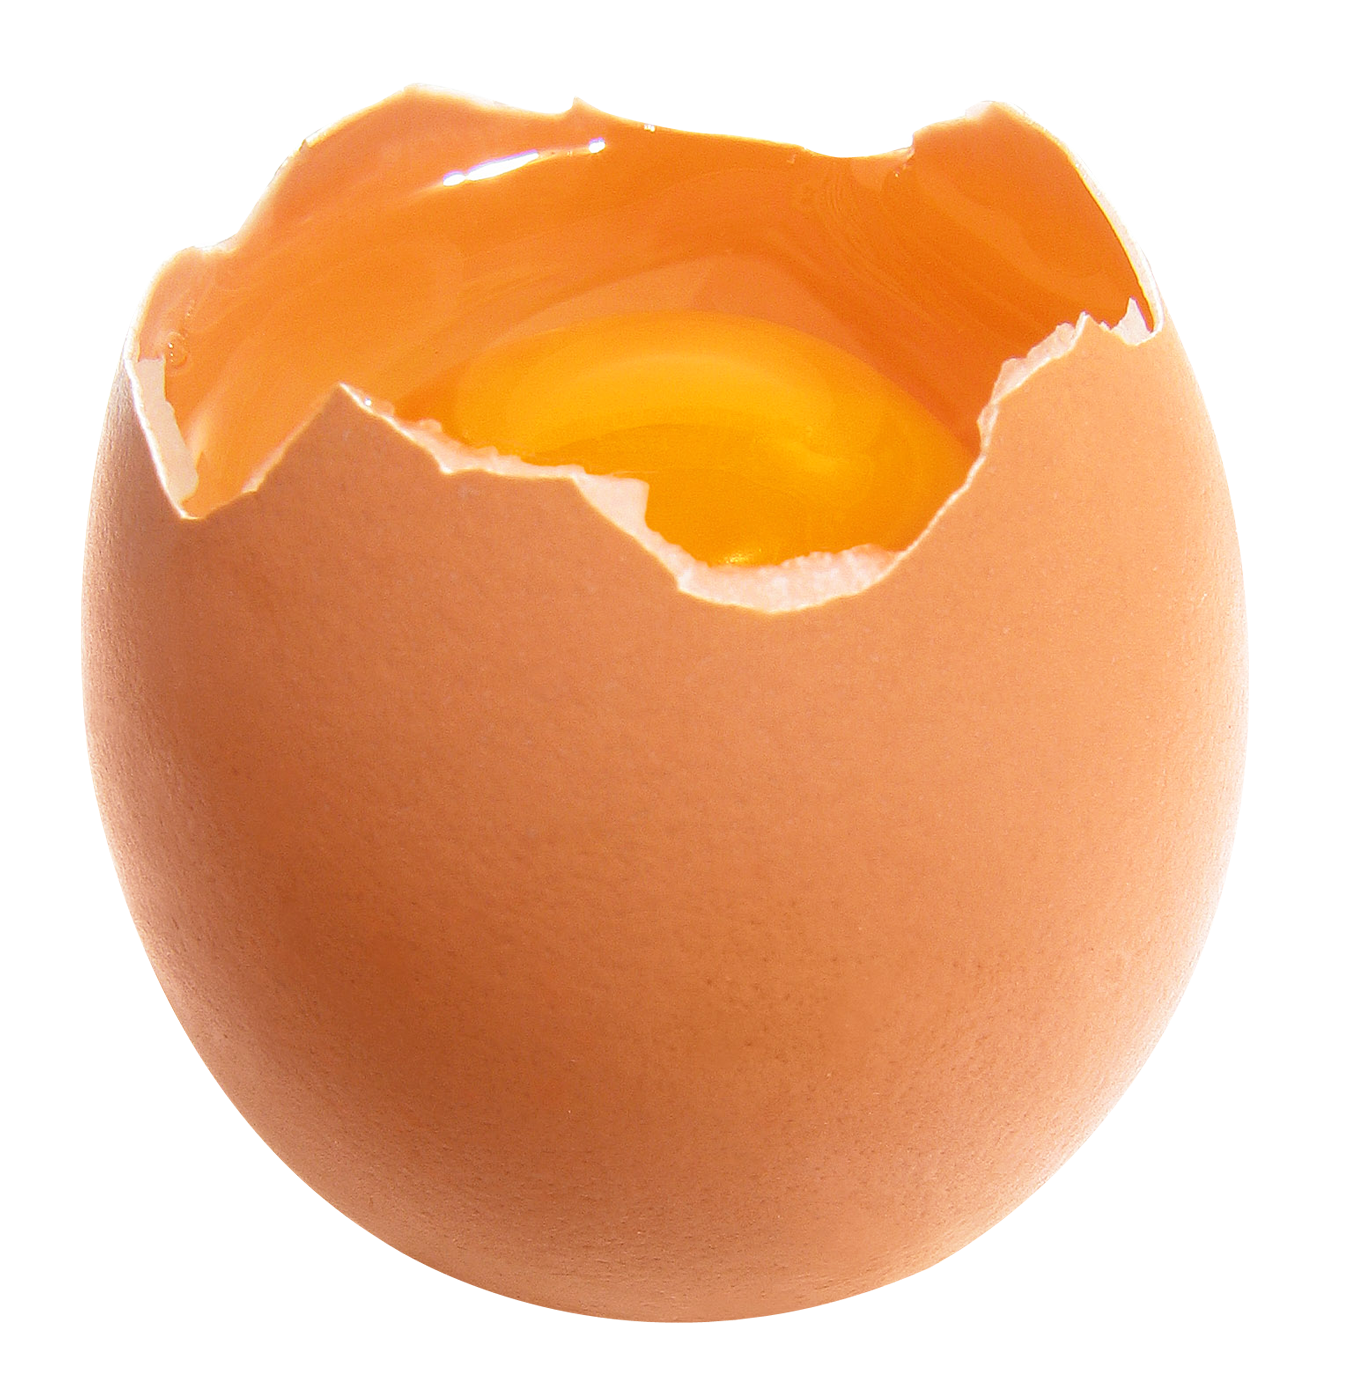 Eggs Png Image Eggs Incredible Edibles Png Images